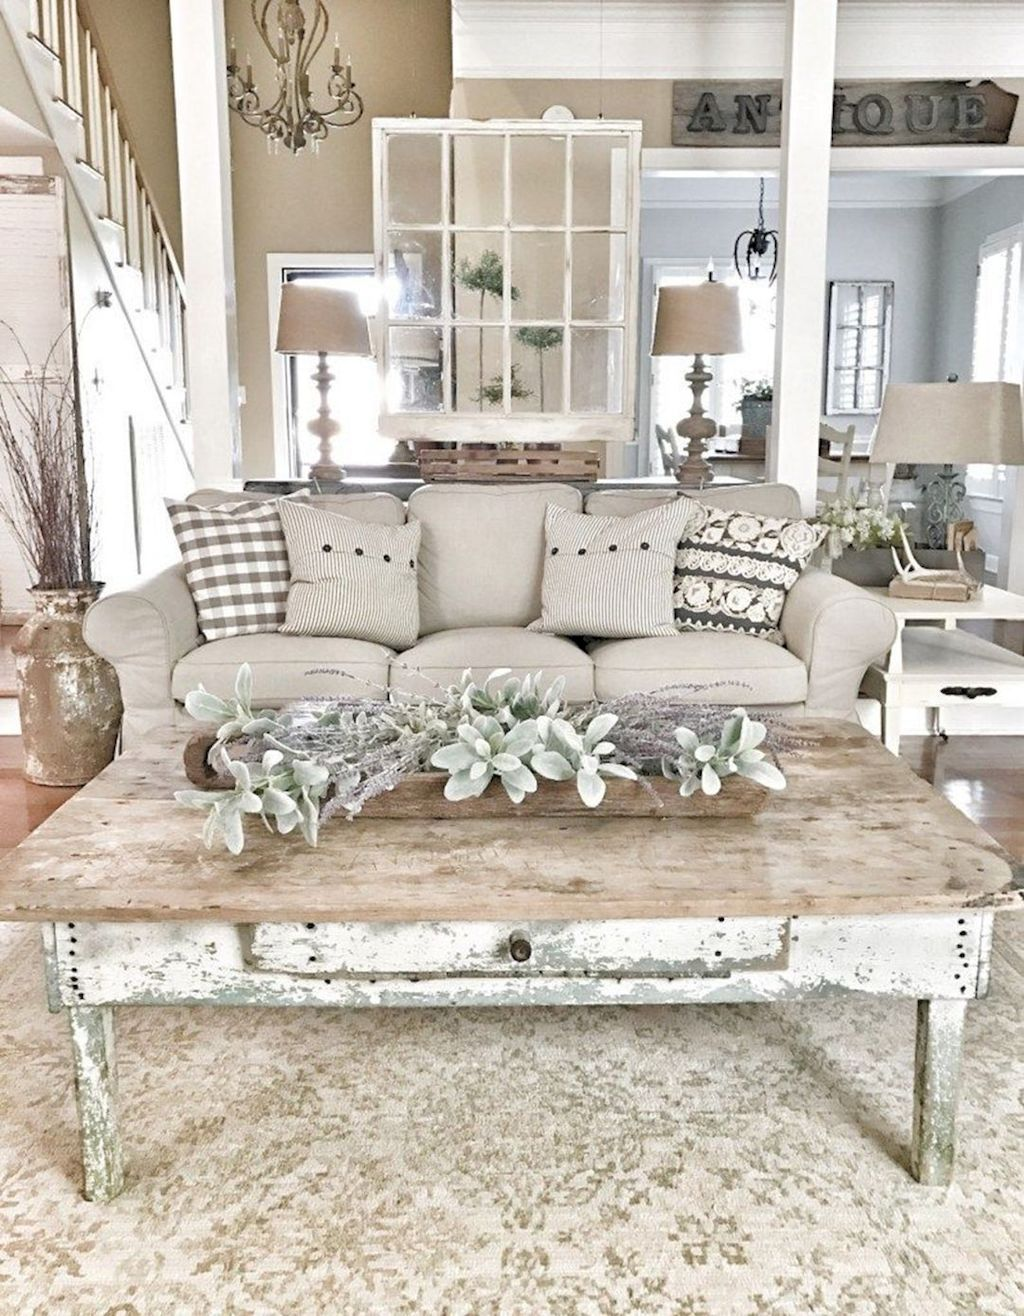 70 Rustic Farmhouse Living Room Decor Ideas